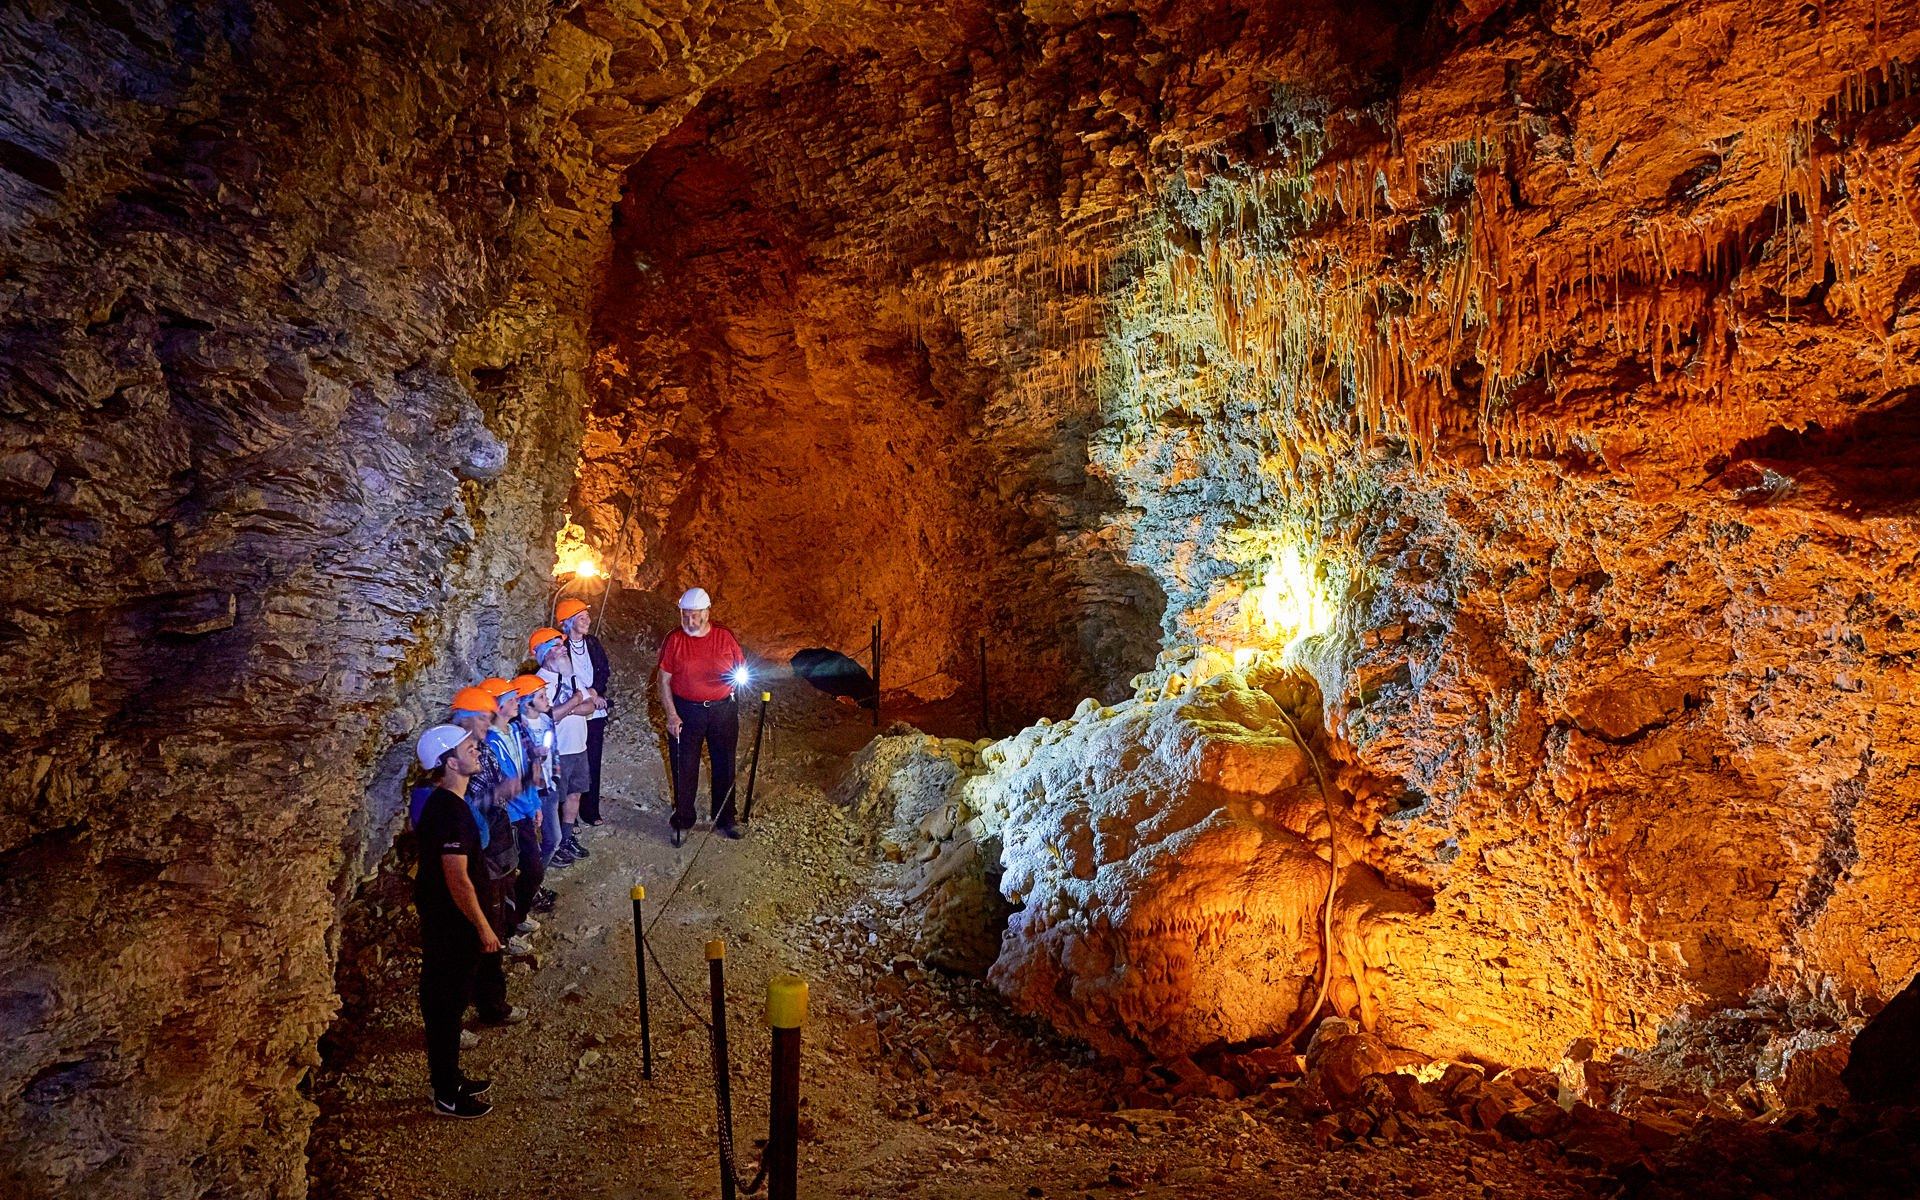 caves-kaikoura-cave-tour-01